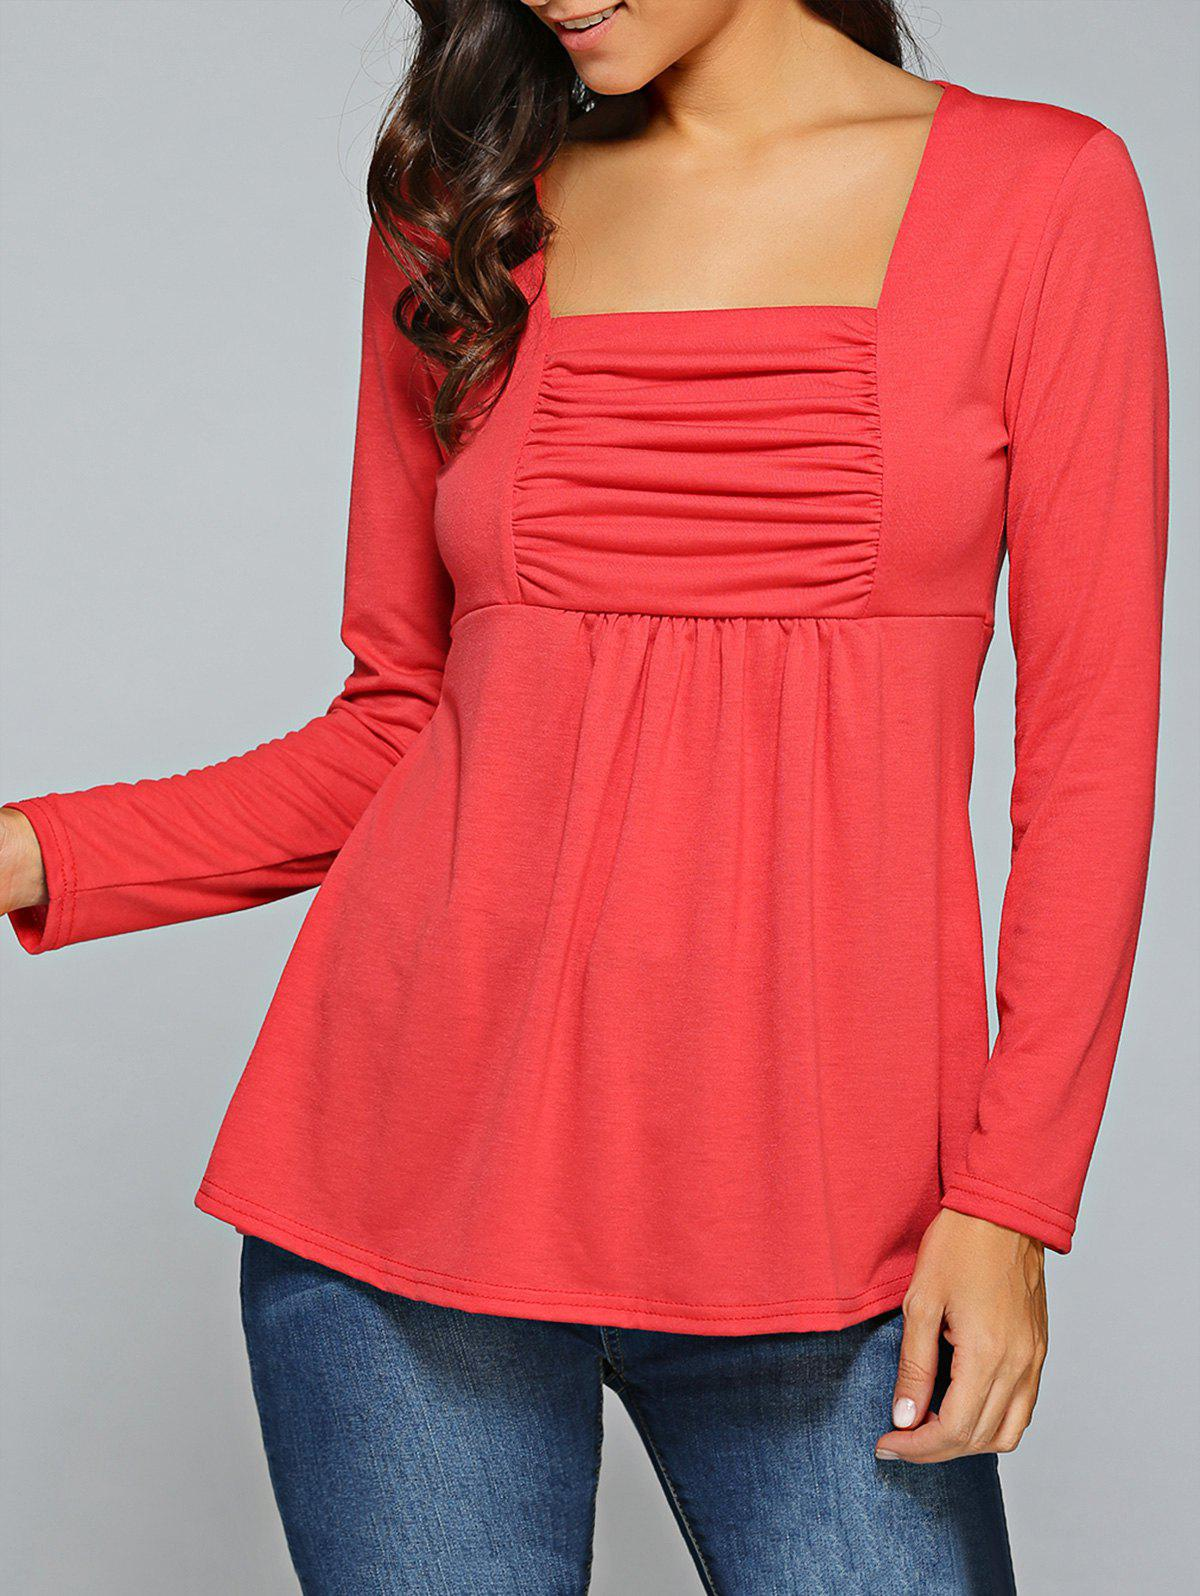 Square Neck Ruched Long Sleeve T-Shirt - RED XL